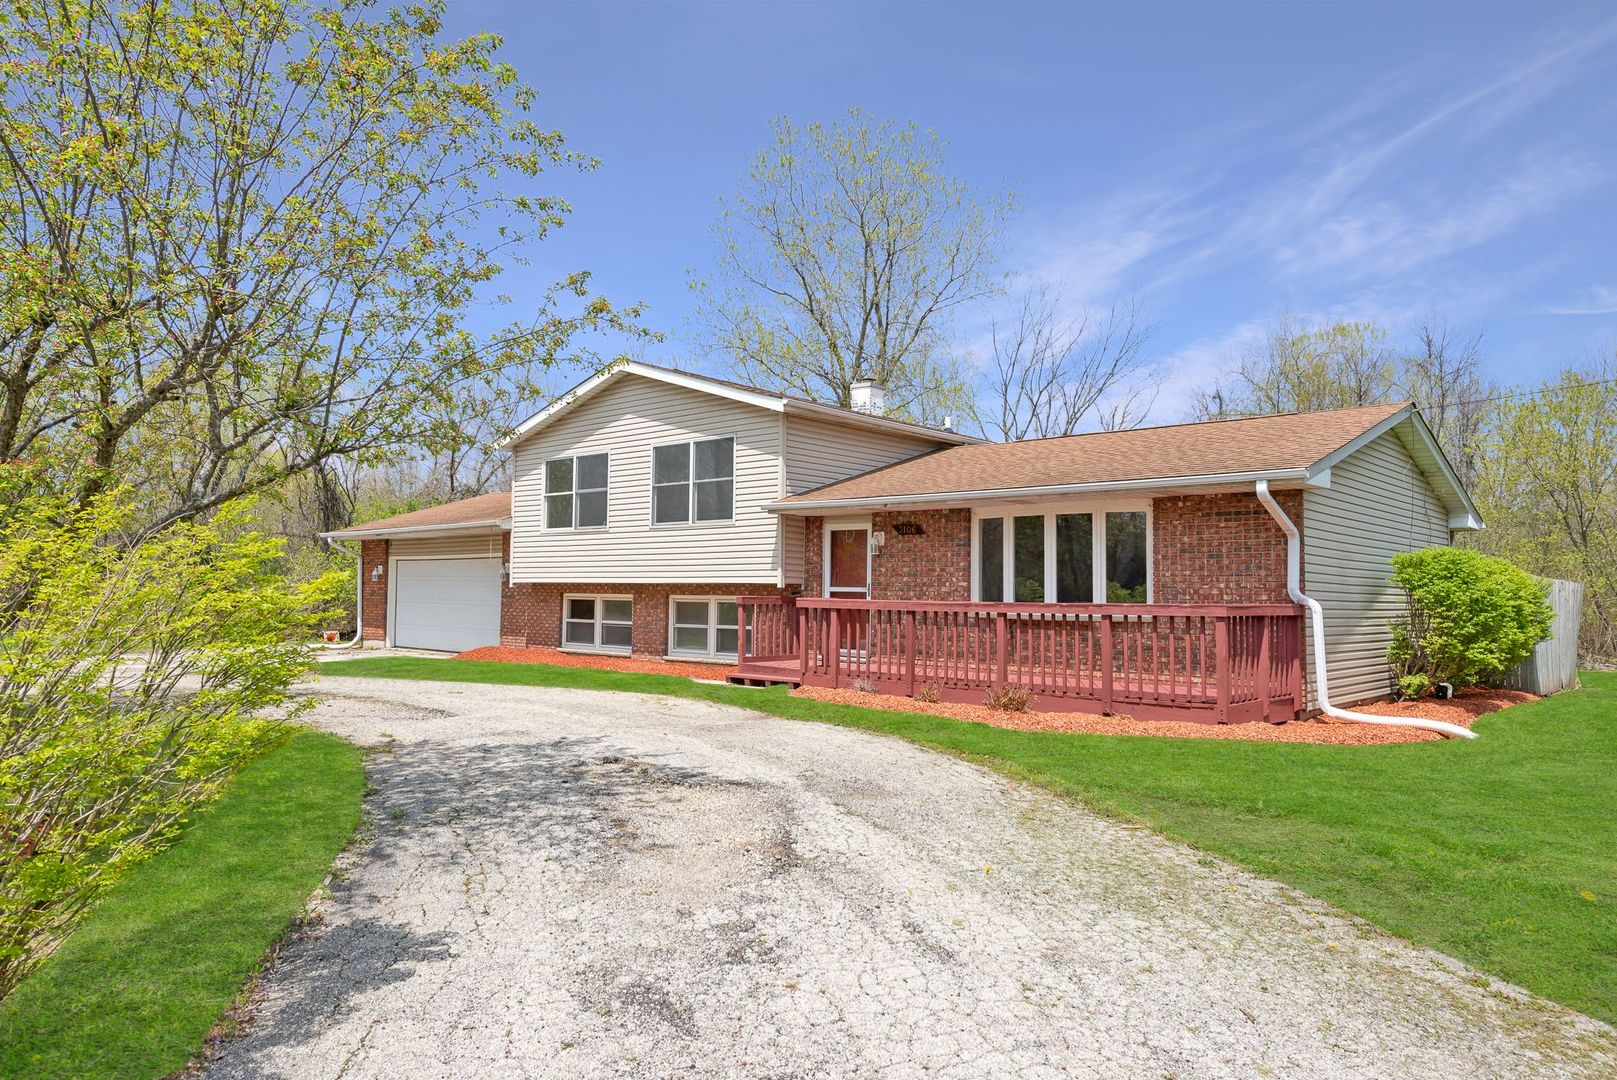 Photo for 3106 13th Street, Winthrop Harbor, IL 60096 (MLS # 10880772)